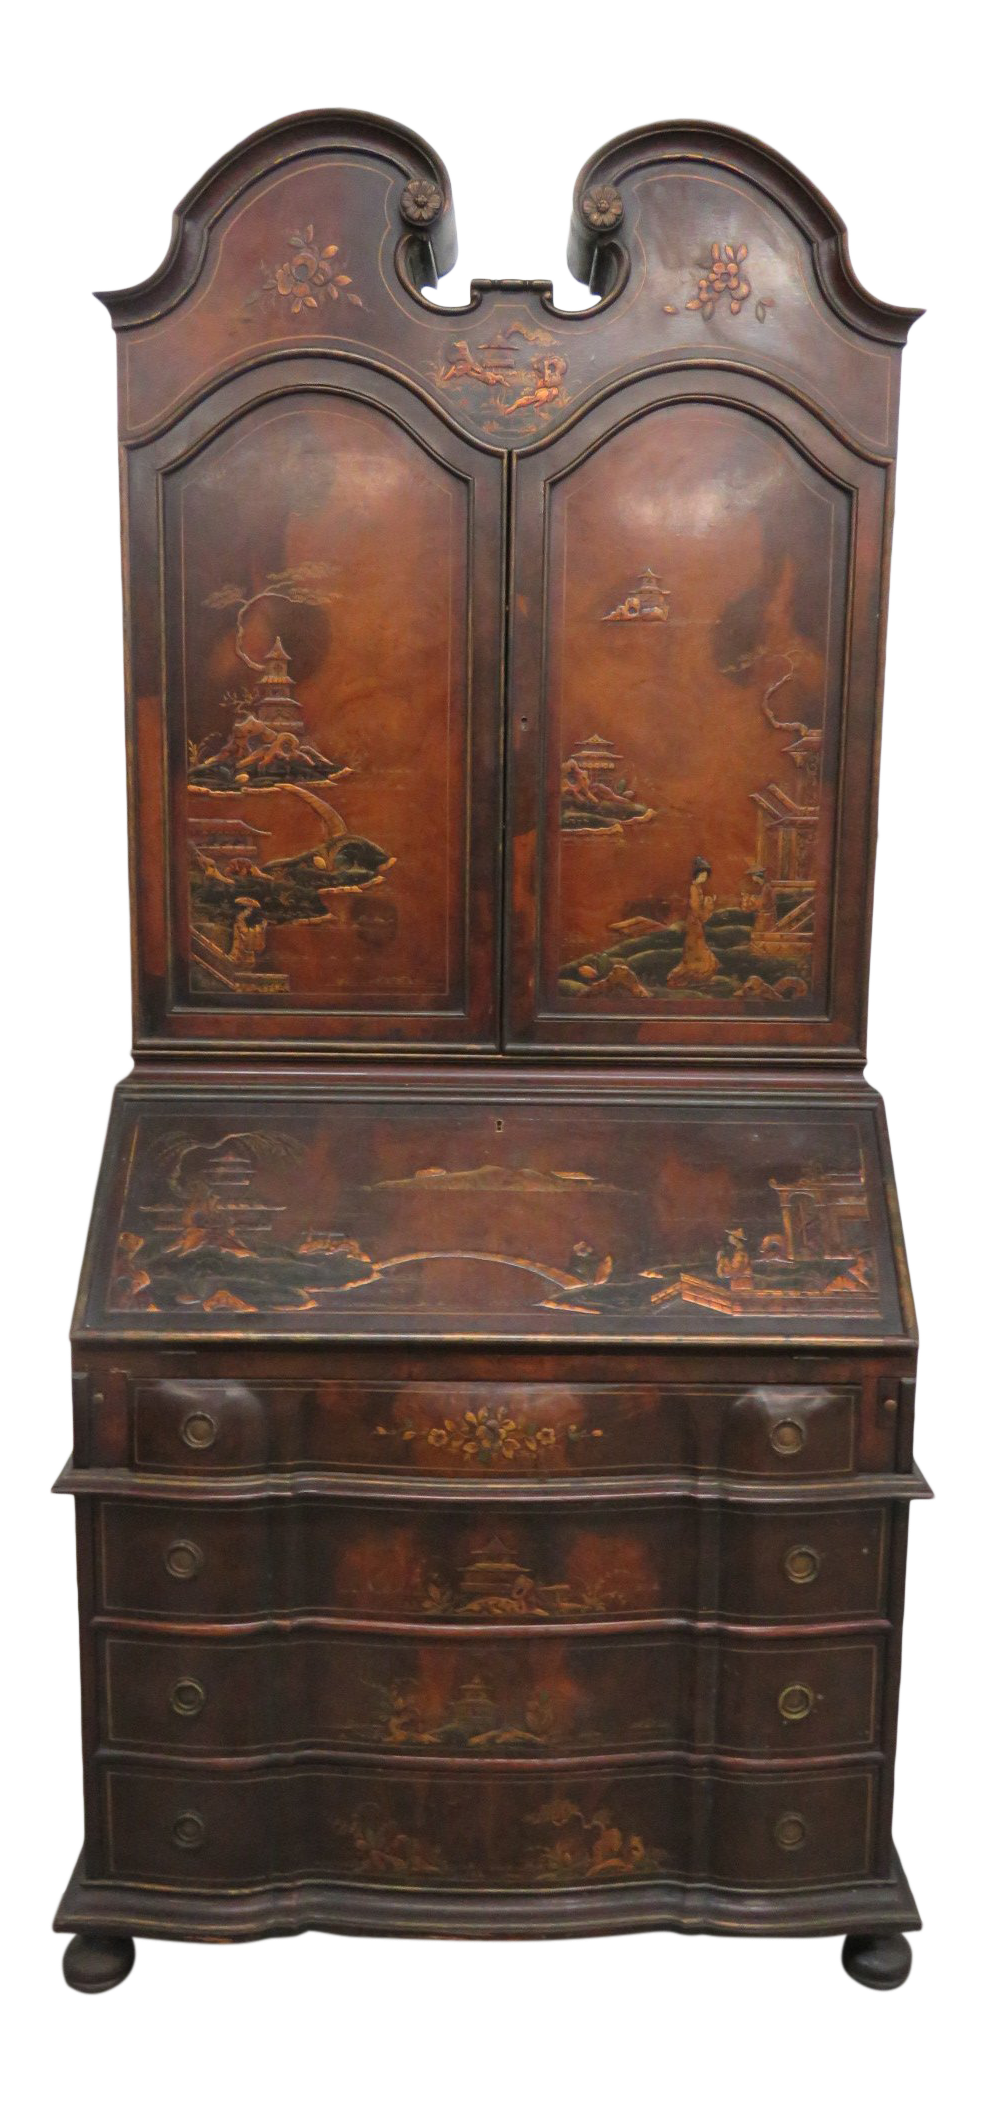 Gallery asian inspired Gray Ny Galleries Asian Inspired Secretary Desk For Sale Decaso Incredible Ny Galleries Asian Inspired Secretary Desk Decaso